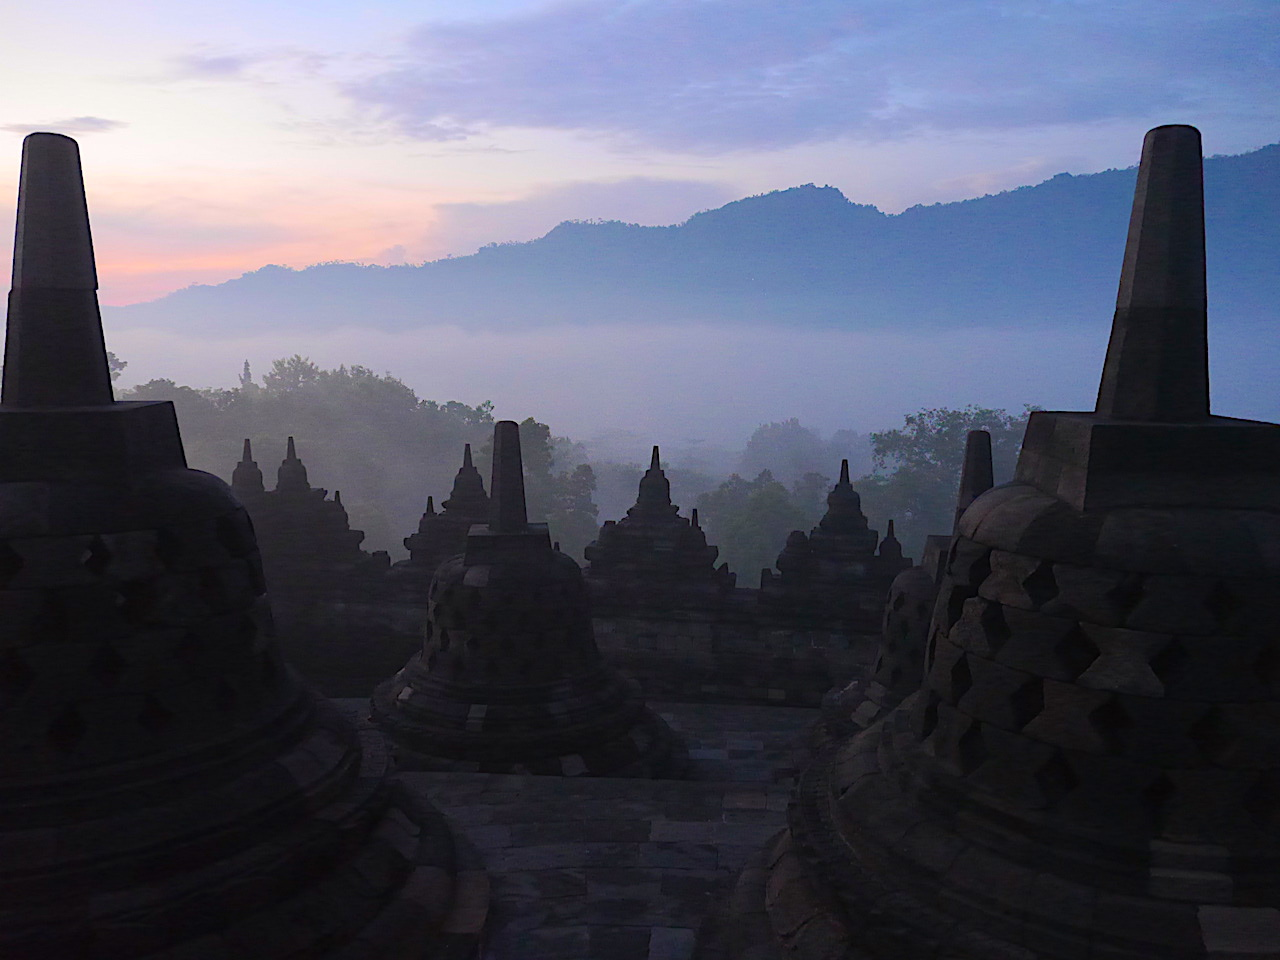 Borobudur sunrise tour review and tips - Travel Connect Experience